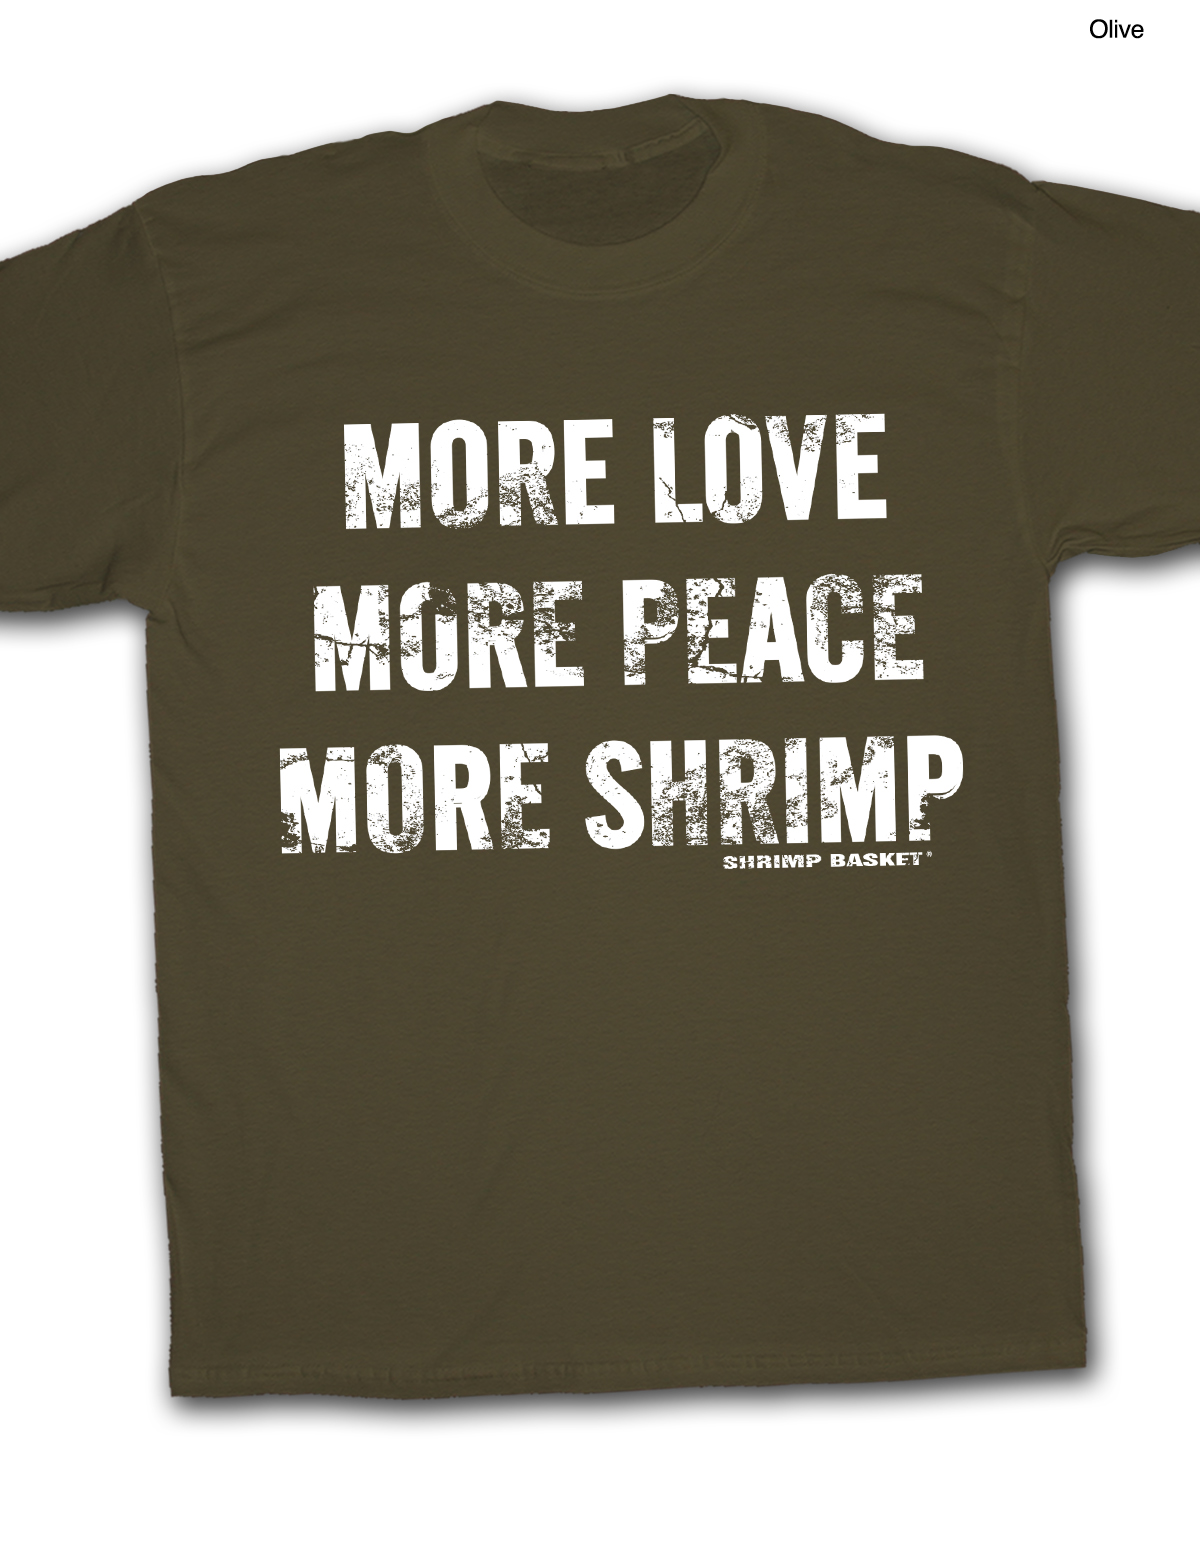 Photo of More Shrimp - Soft Style Tee